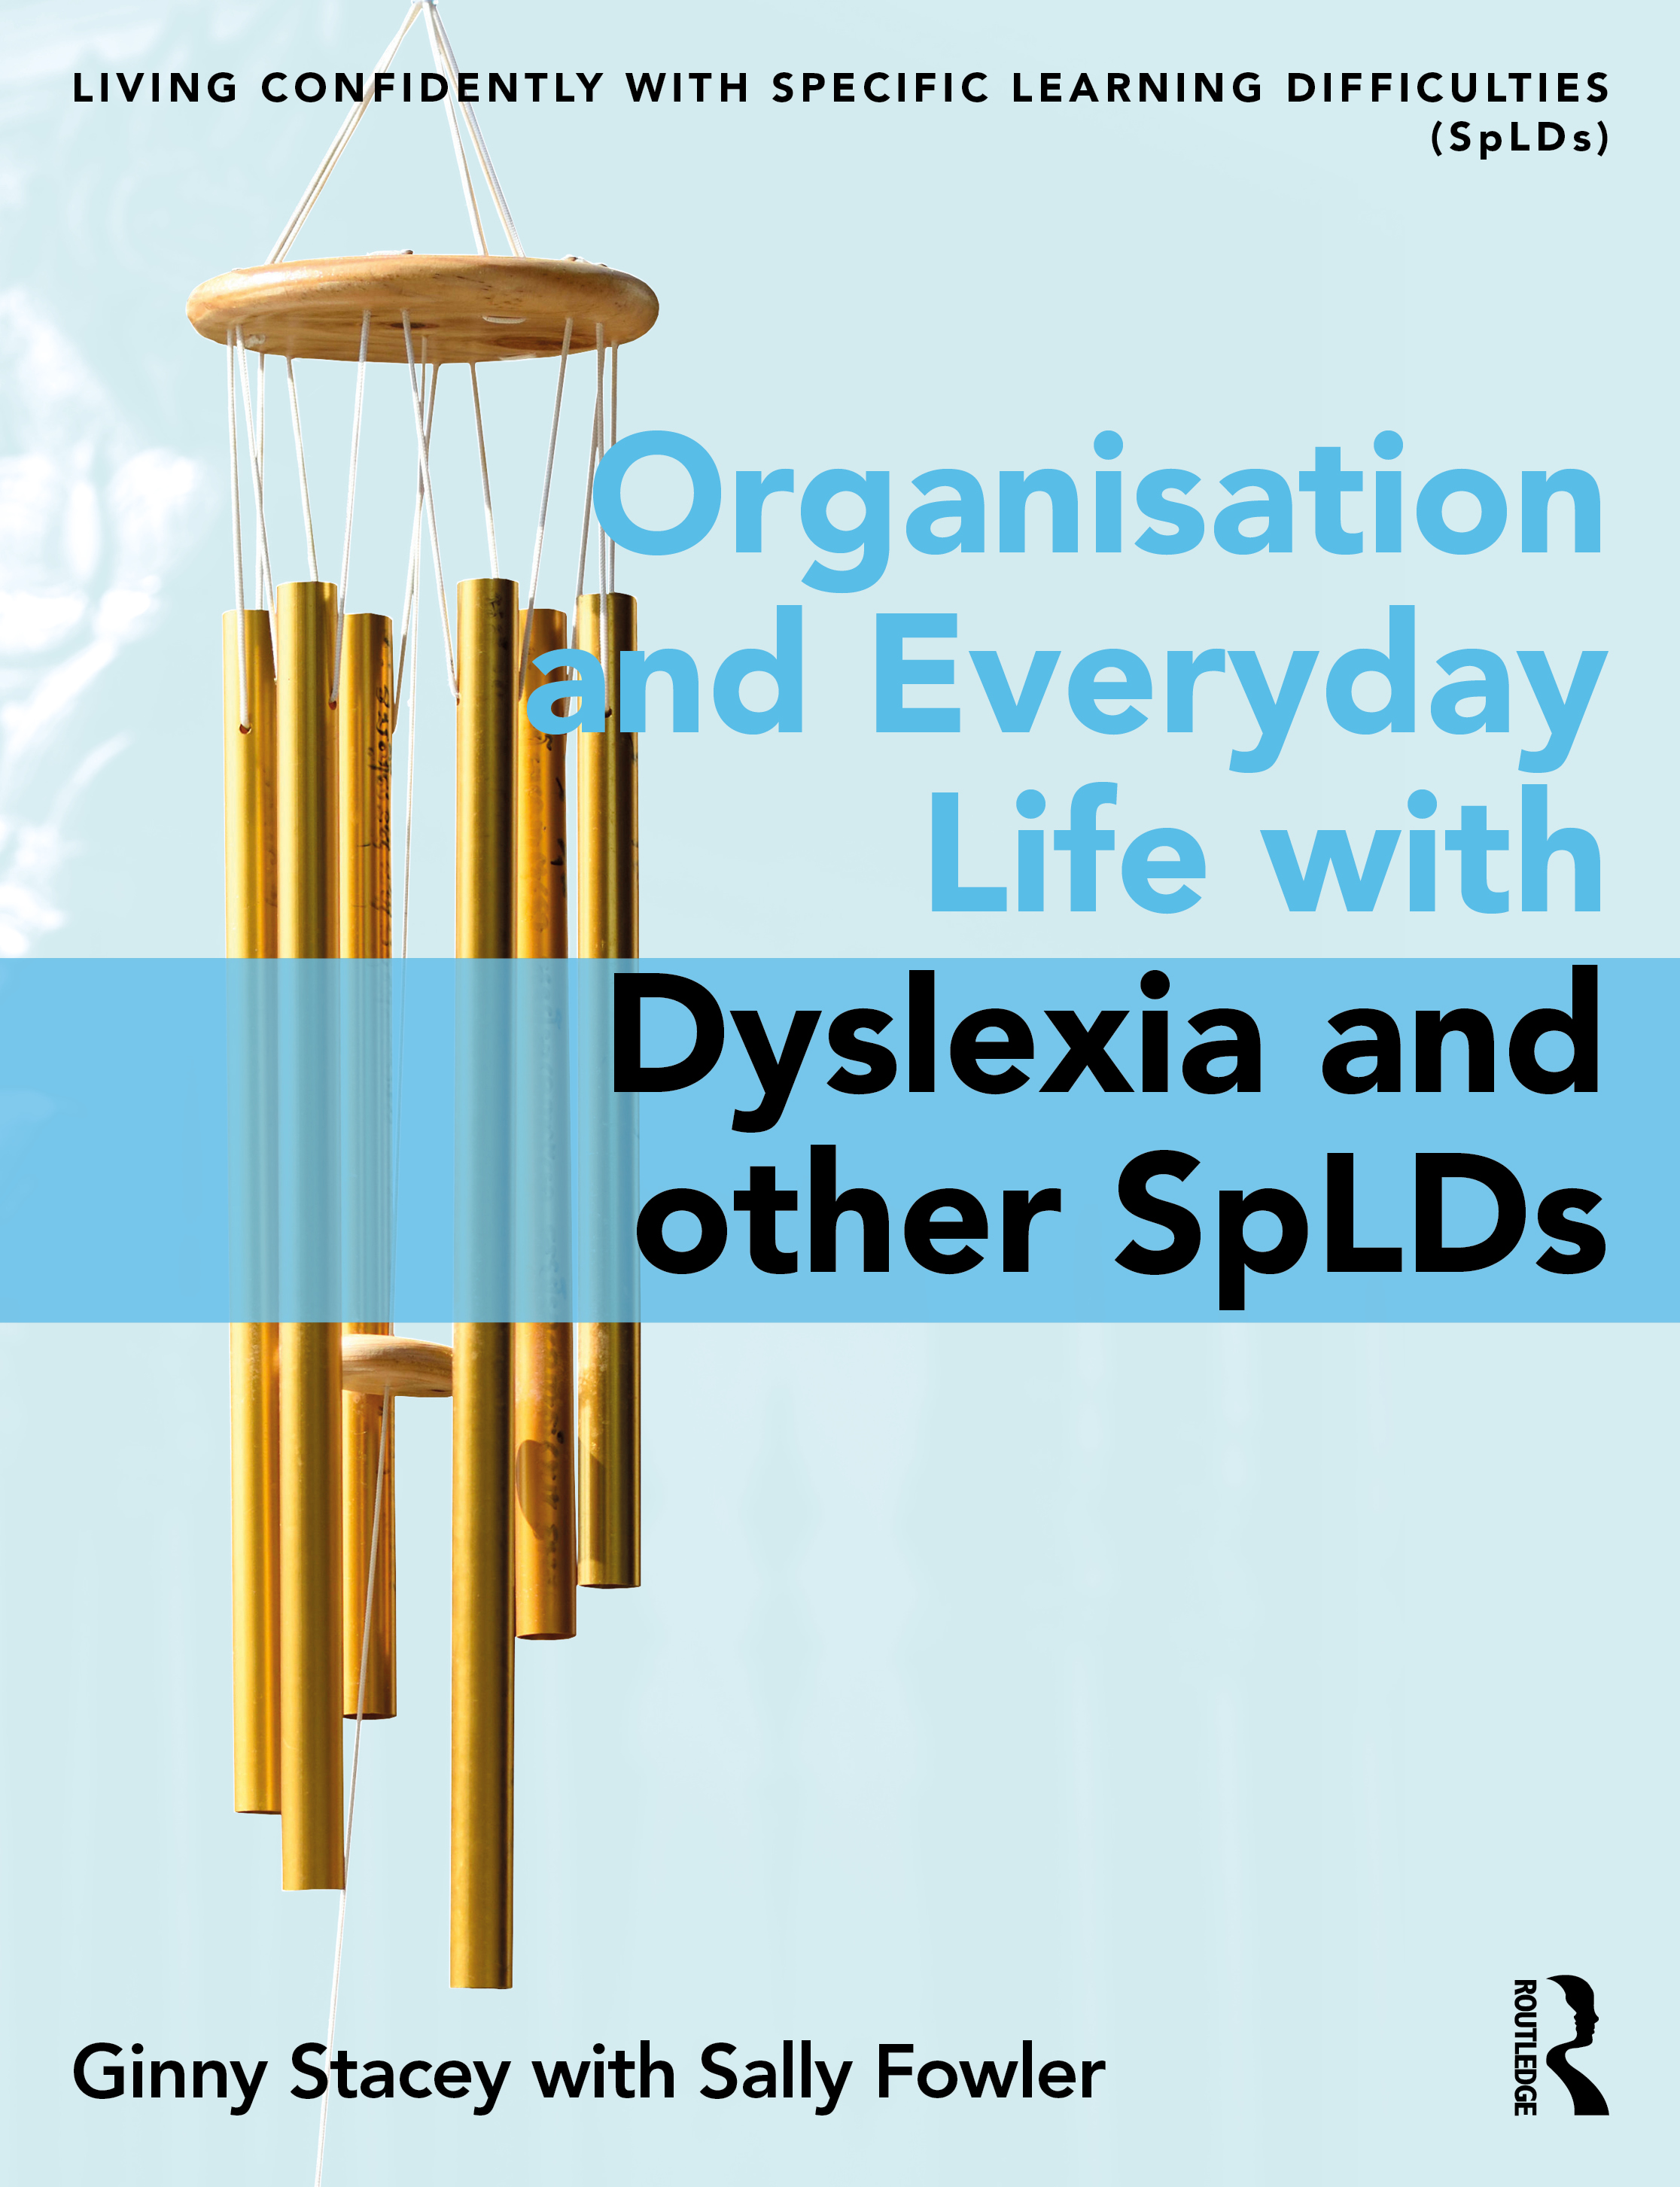 Organisation and Everyday Life: Living Confidently with Dyslexia/SpLD book cover